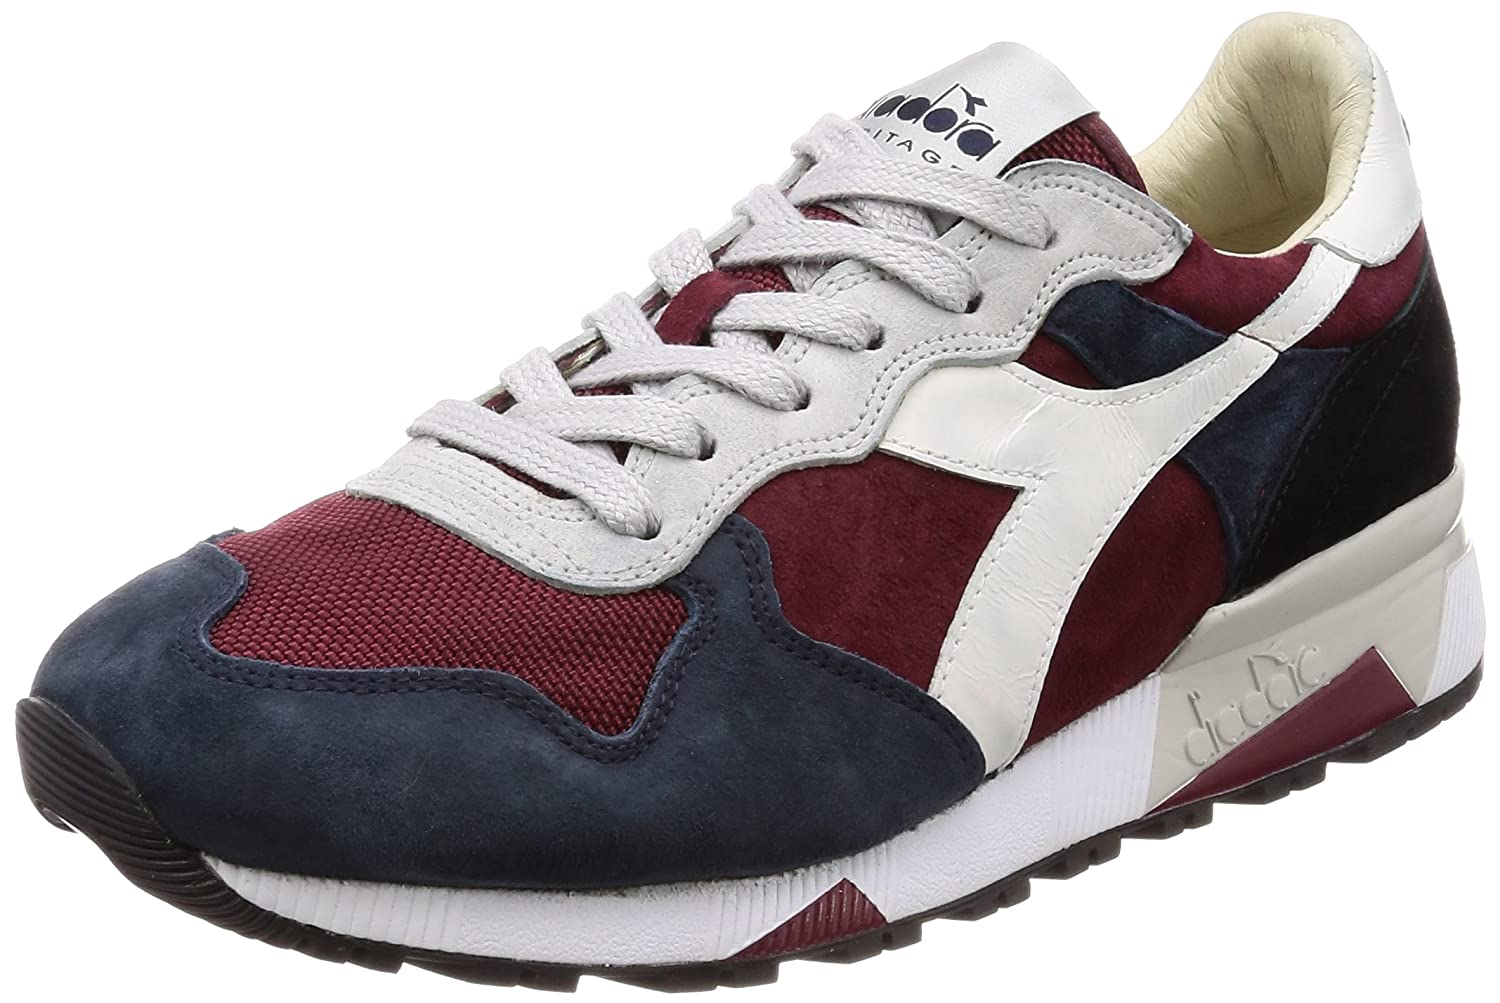 Acquista diadora trident 90 s - OFF70% sconti 98b66f1bb00